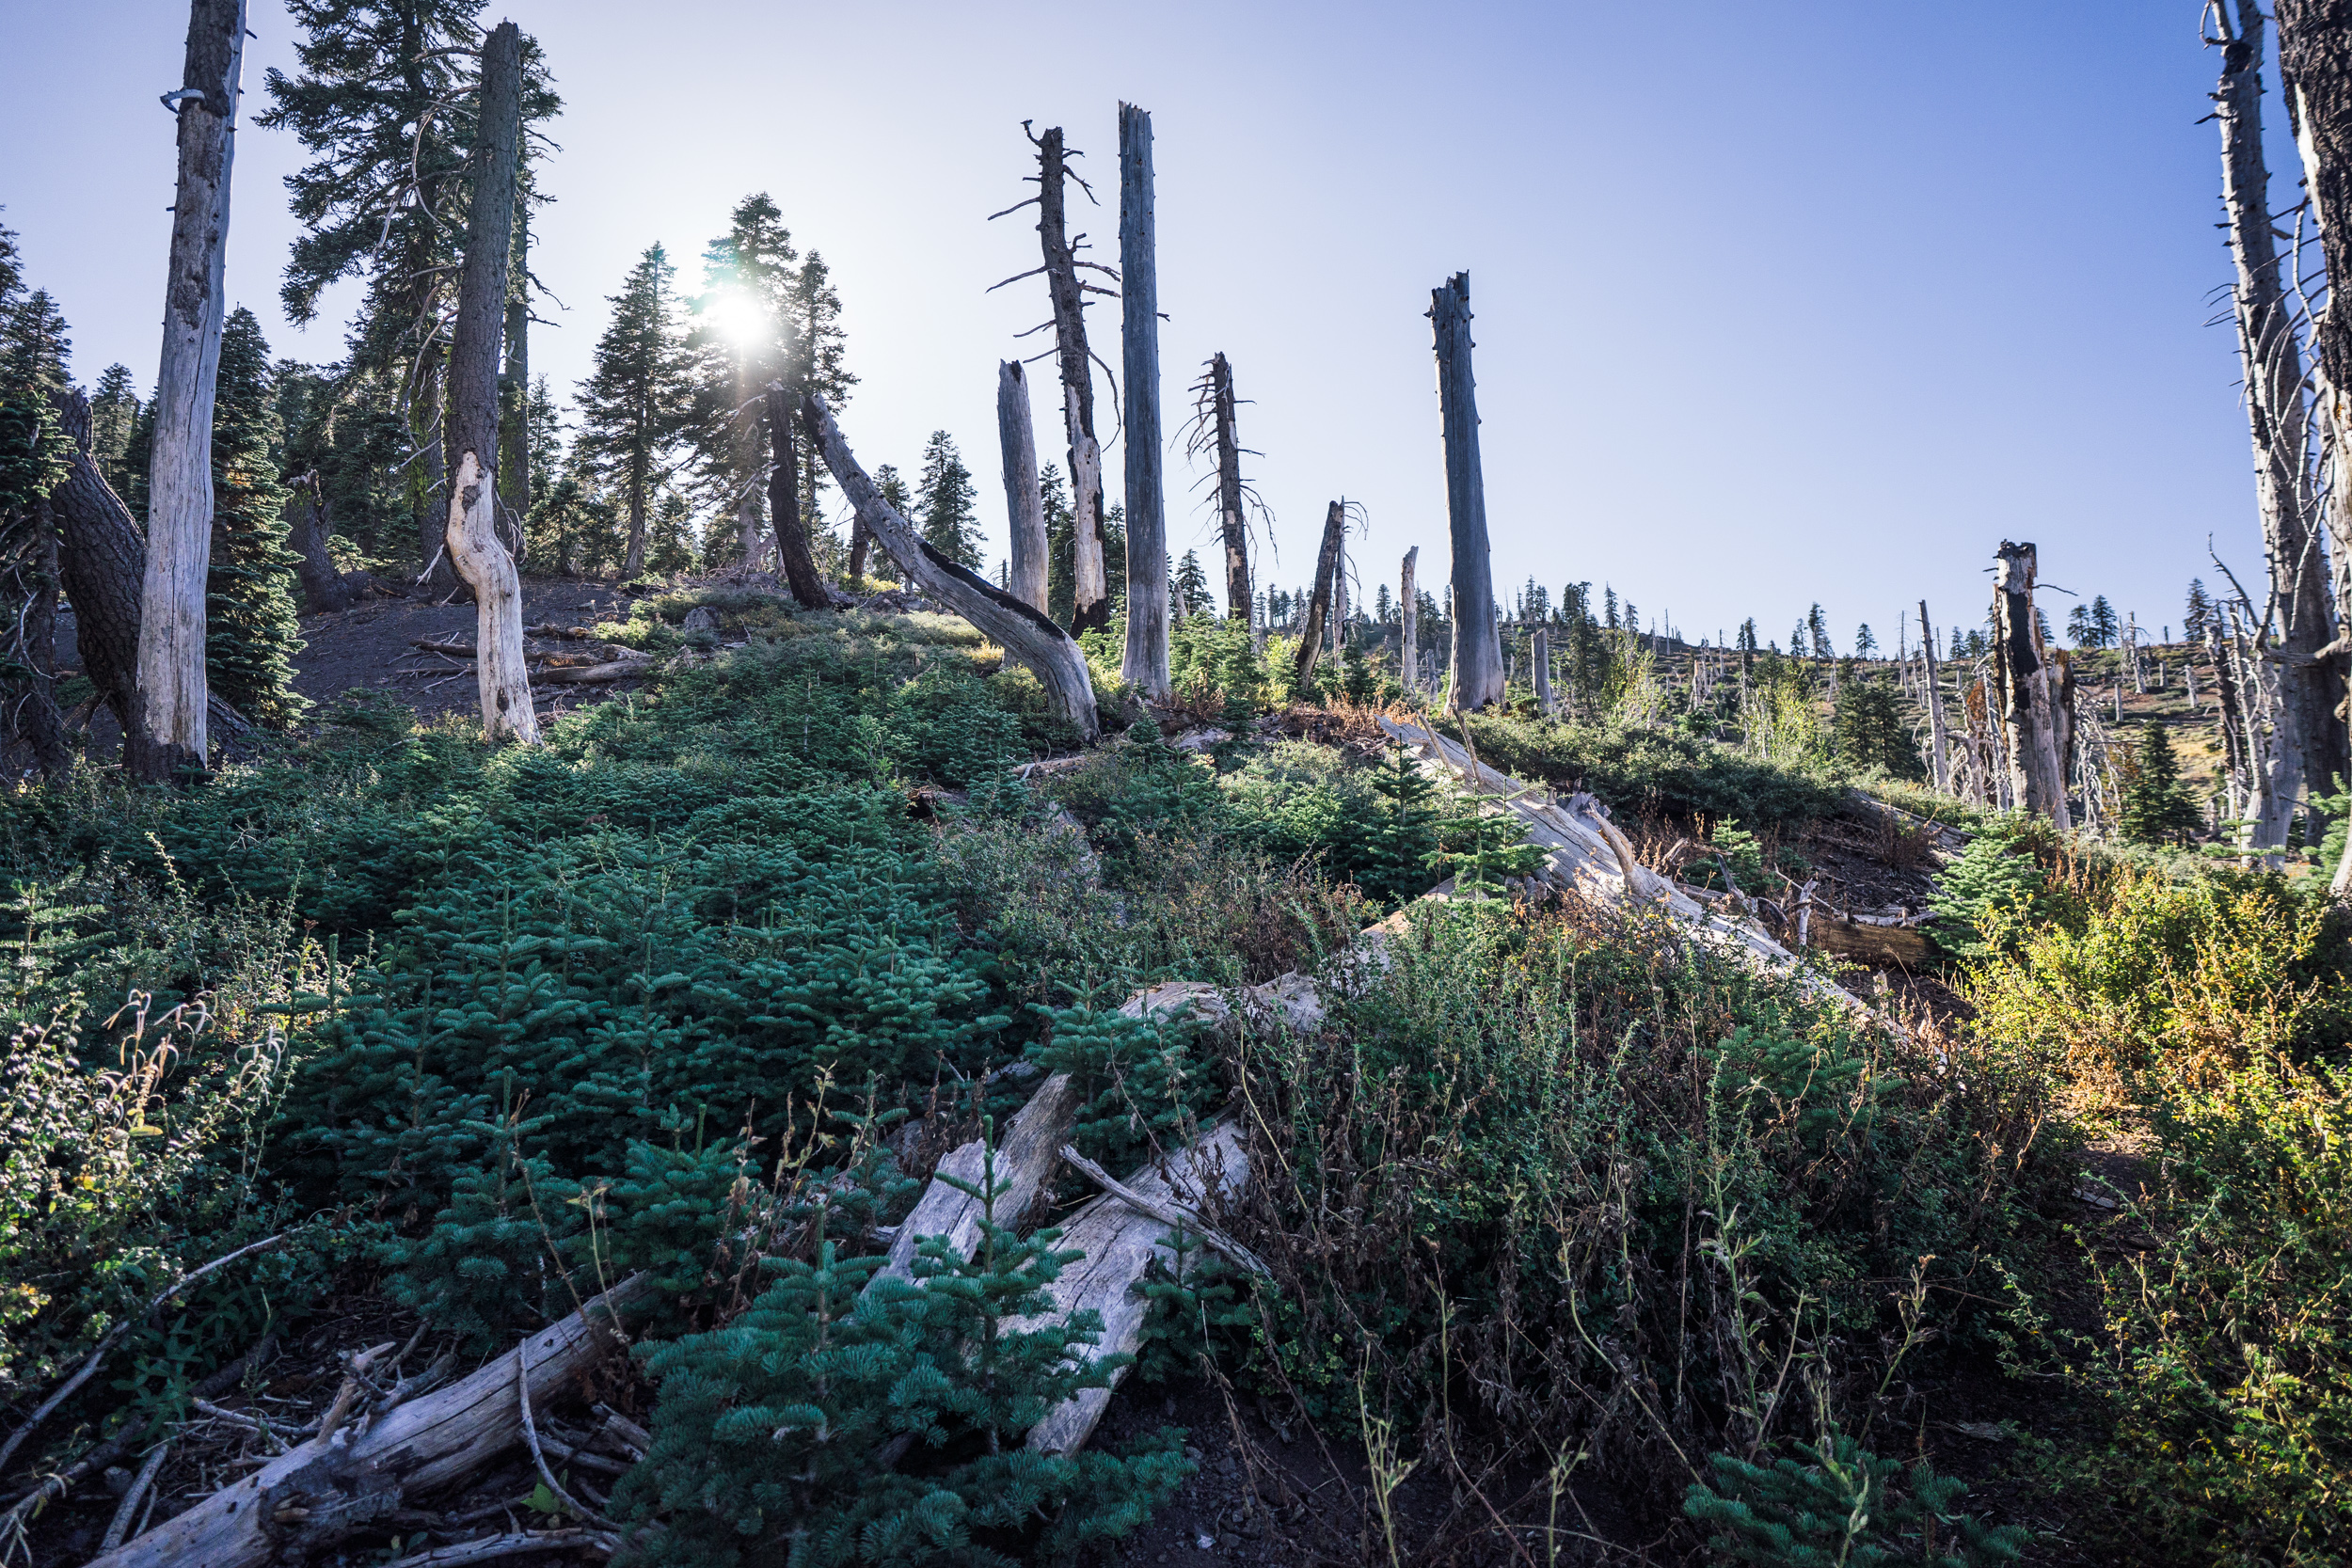 - Almost at the top, the hike goes through an area which underwent a large wildfire in the past, but where young trees are already repopulating the slopes.